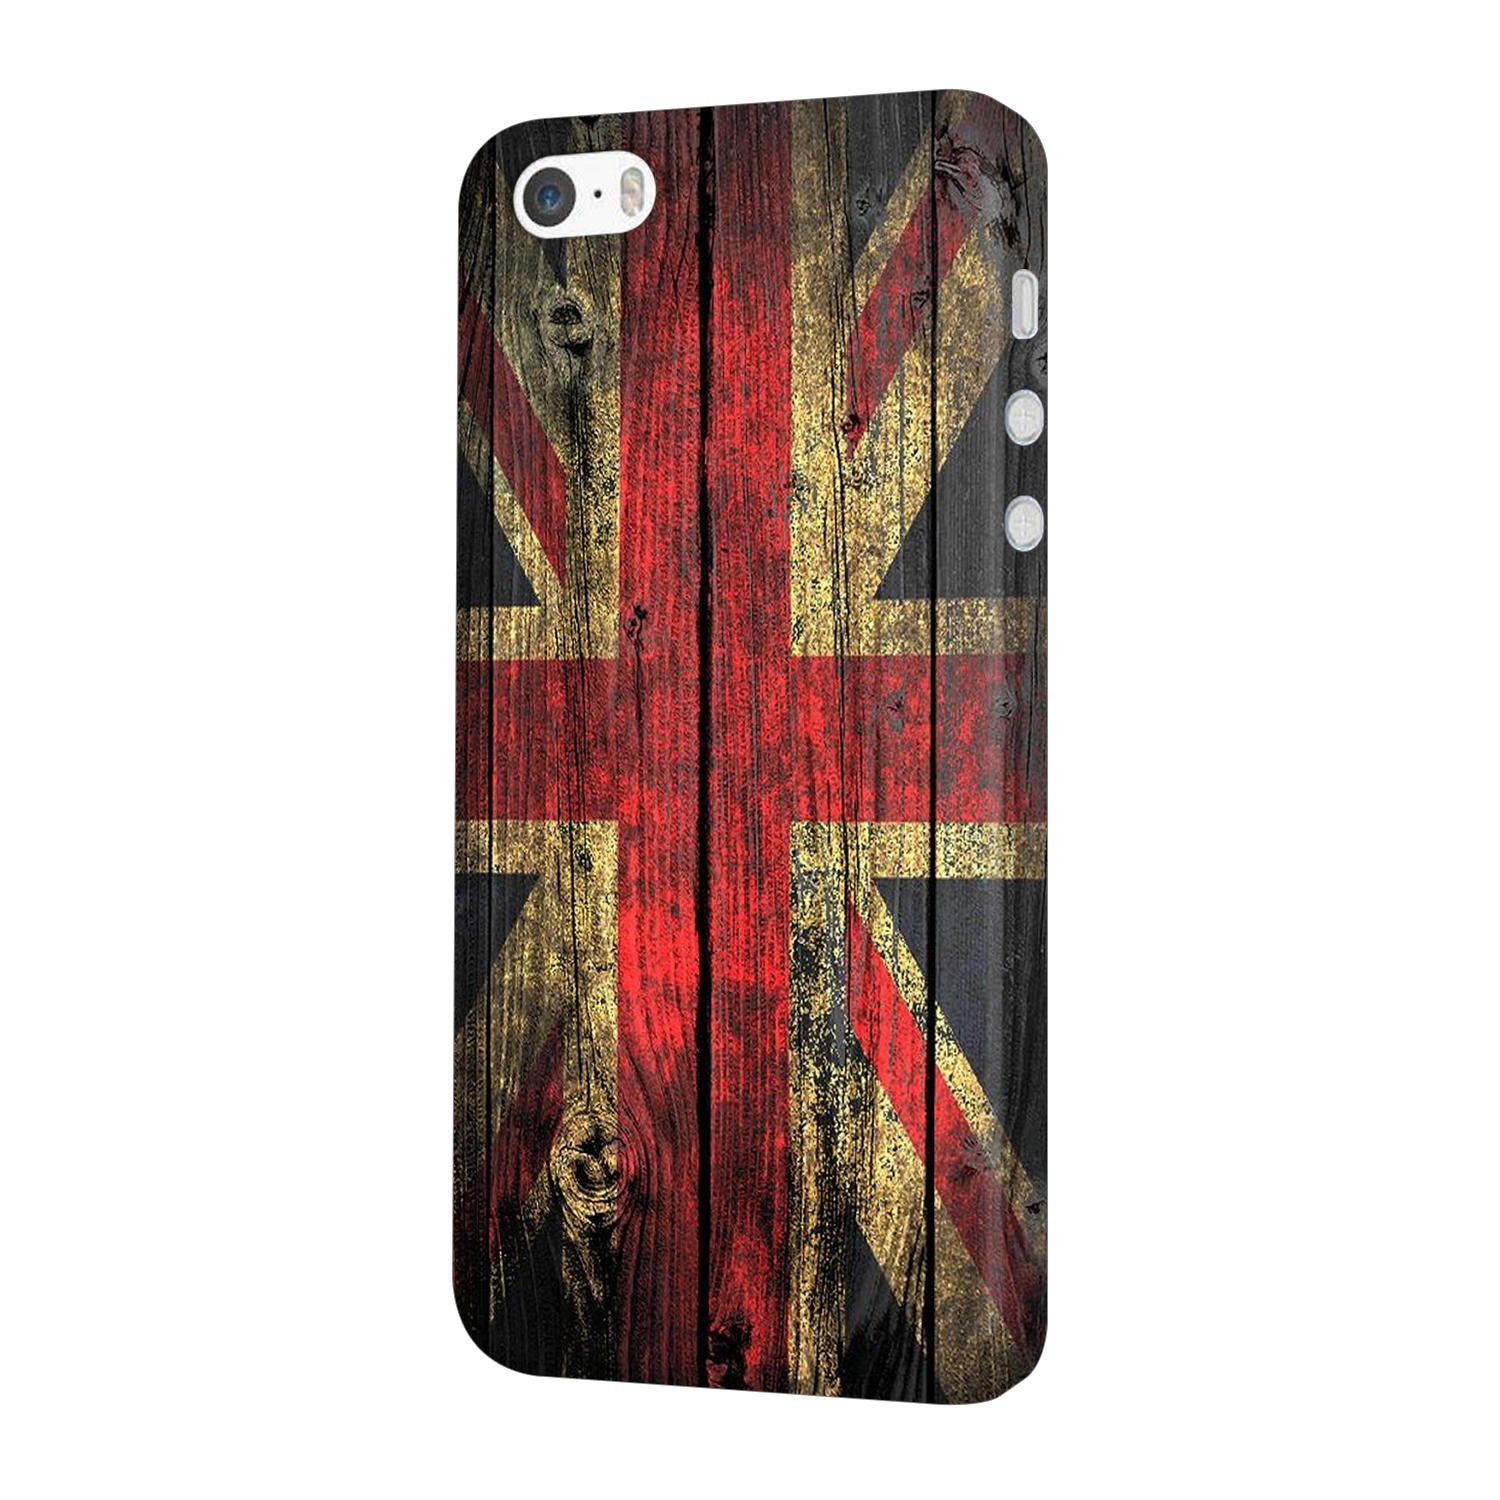 Union Jack iPhone 5 Mobile Cover Case - MADANYU